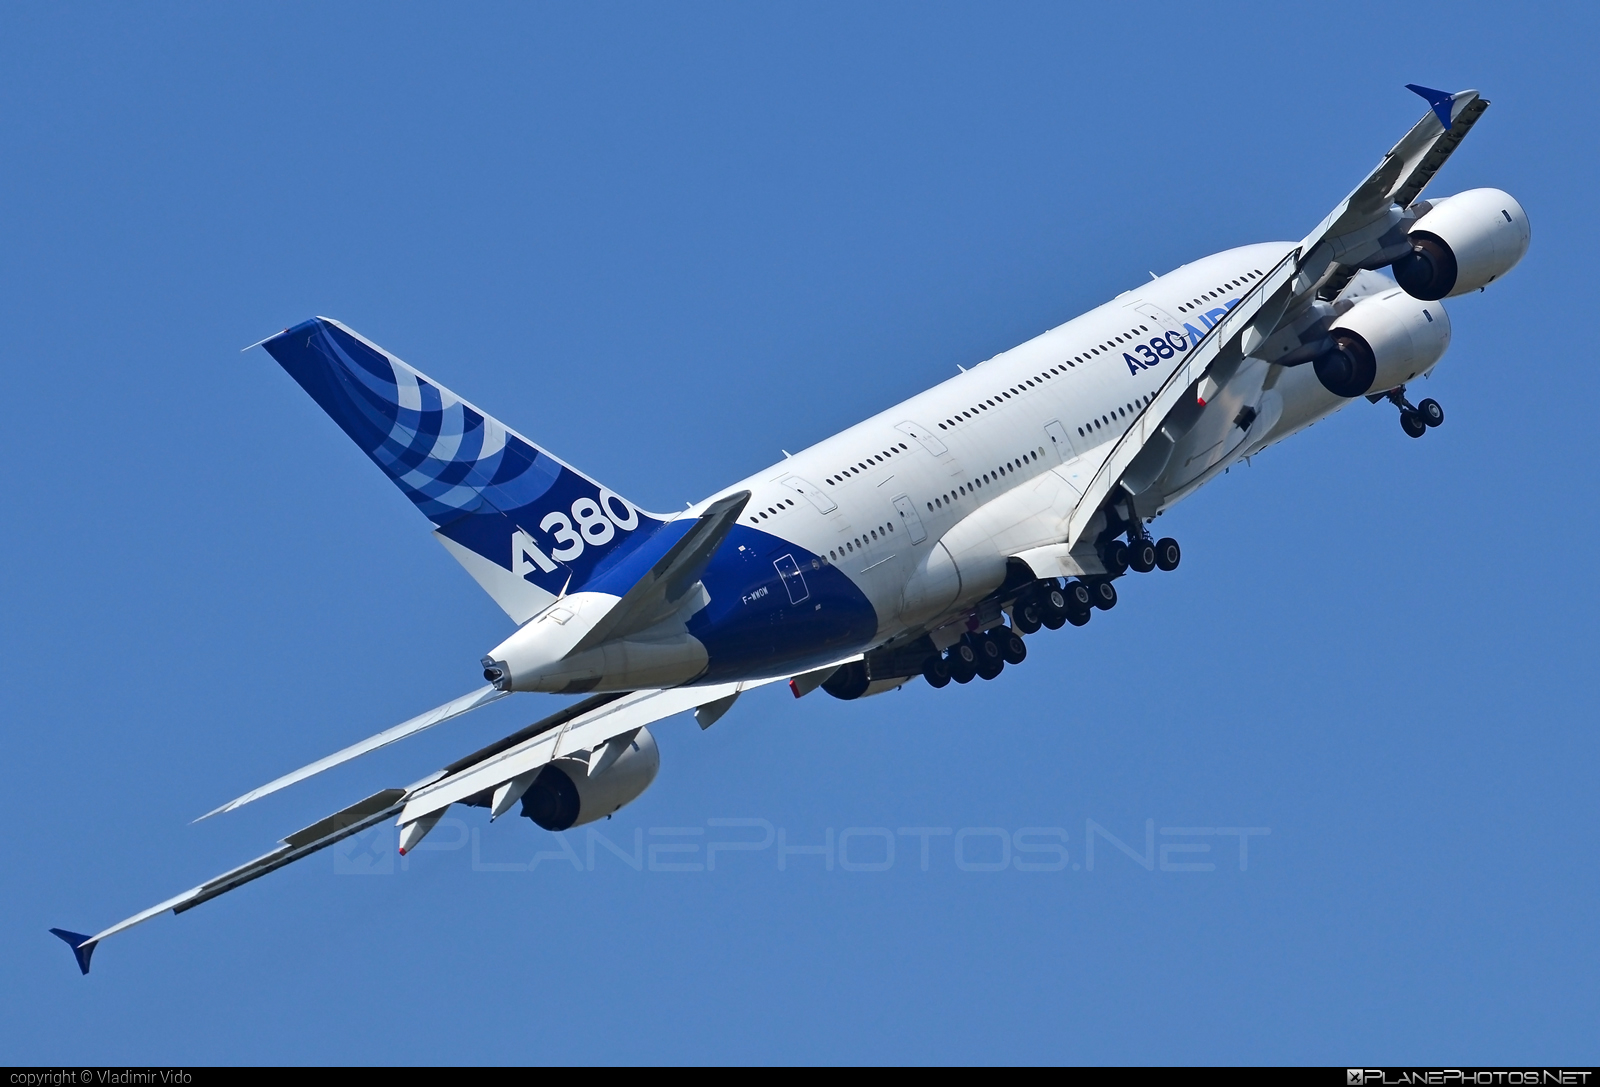 Airbus A380-841 - F-WWOW operated by Airbus Industrie #a380 #a380family #airbus #airbus380